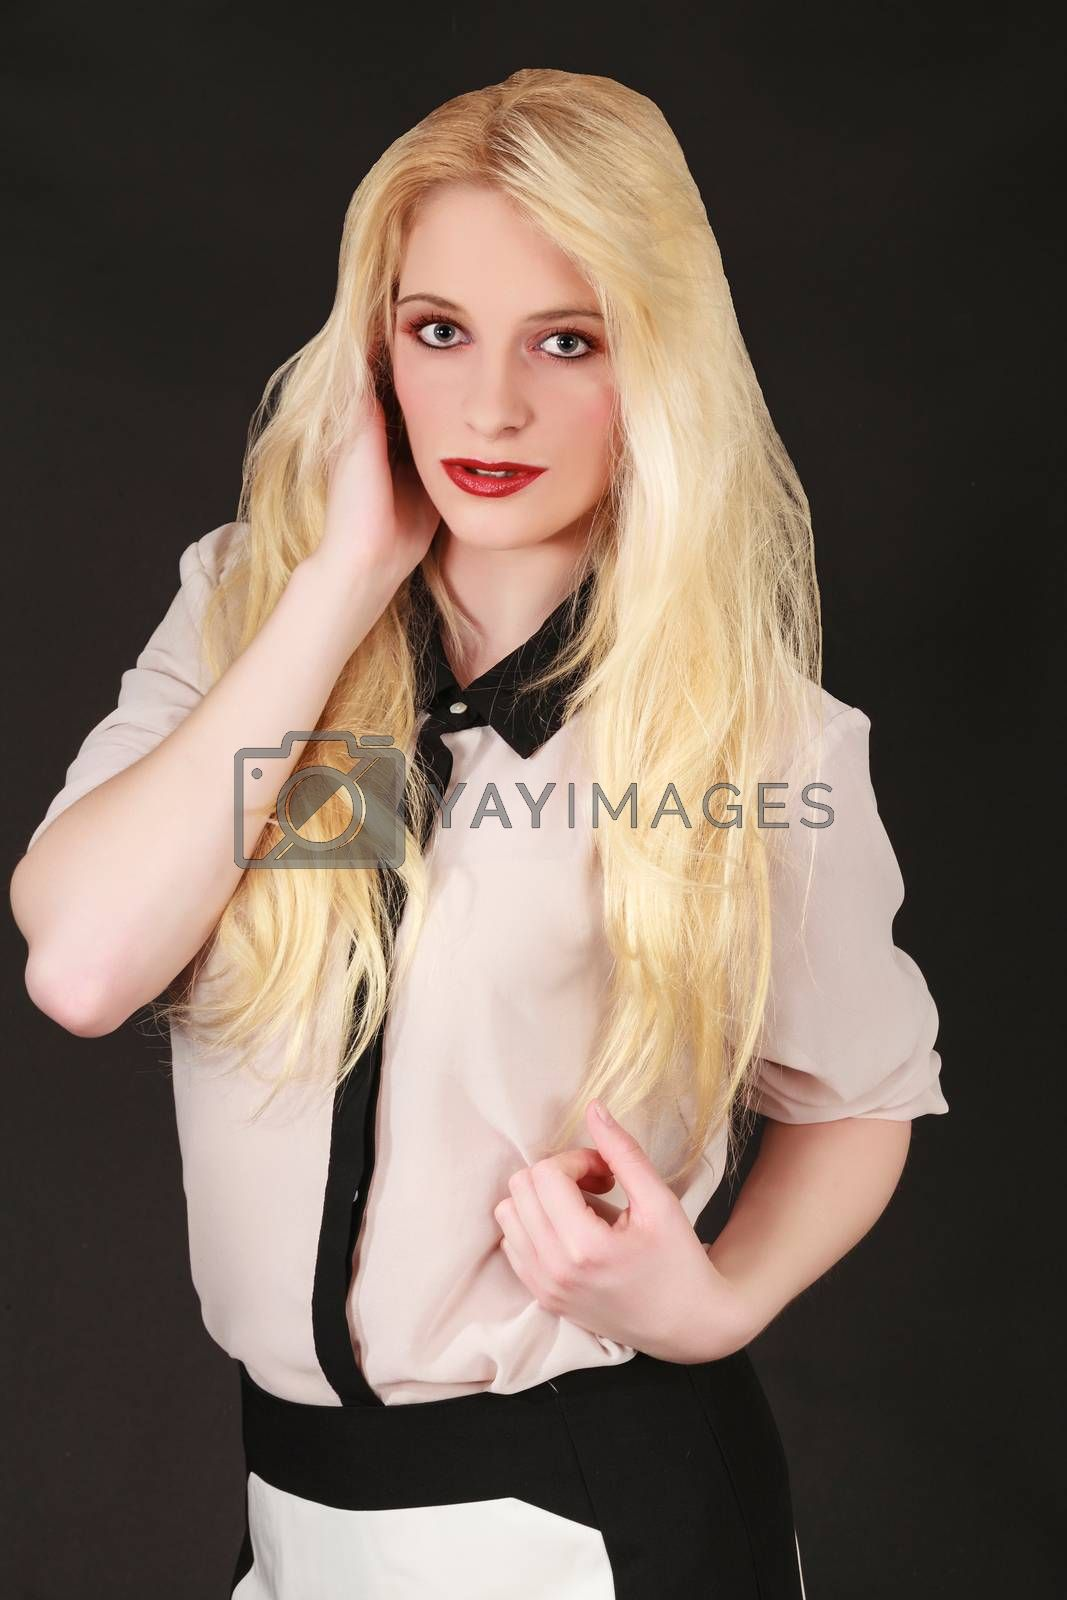 Portrait of a young blond woman with long hair, red lipstick, fashionably dressed on black background.